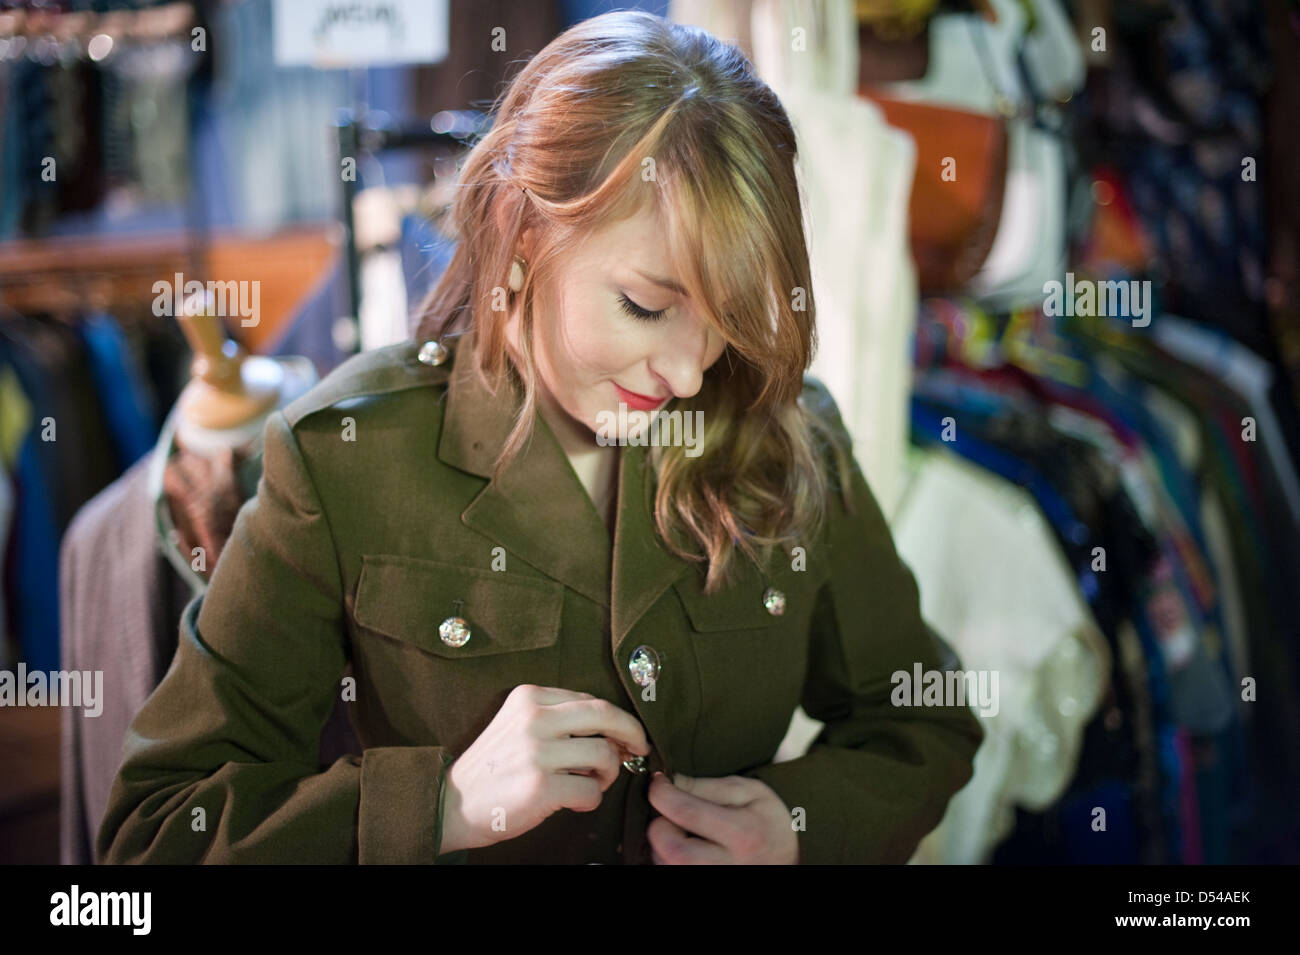 15db29a38c7 Pretty young woman buttons up and tries on an old green army jacket at a  vintage